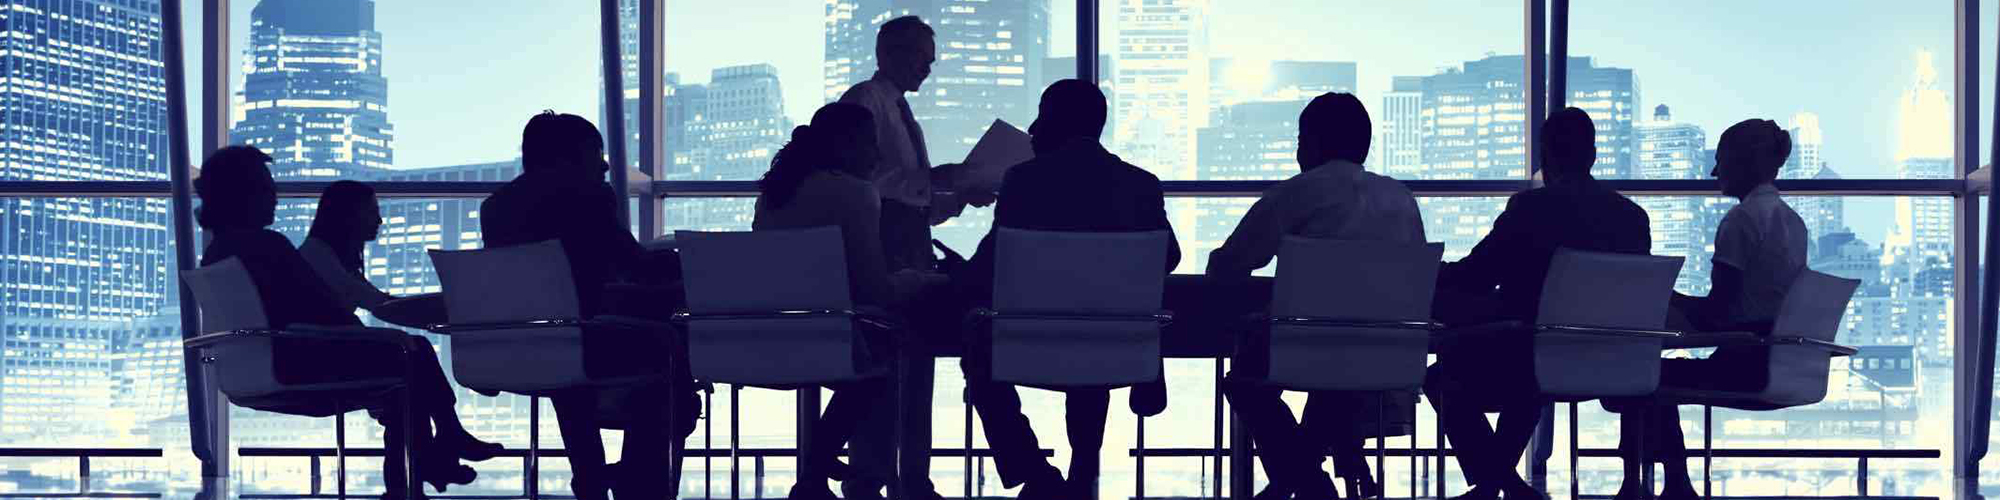 Businesspeople at a conference table in an office building.